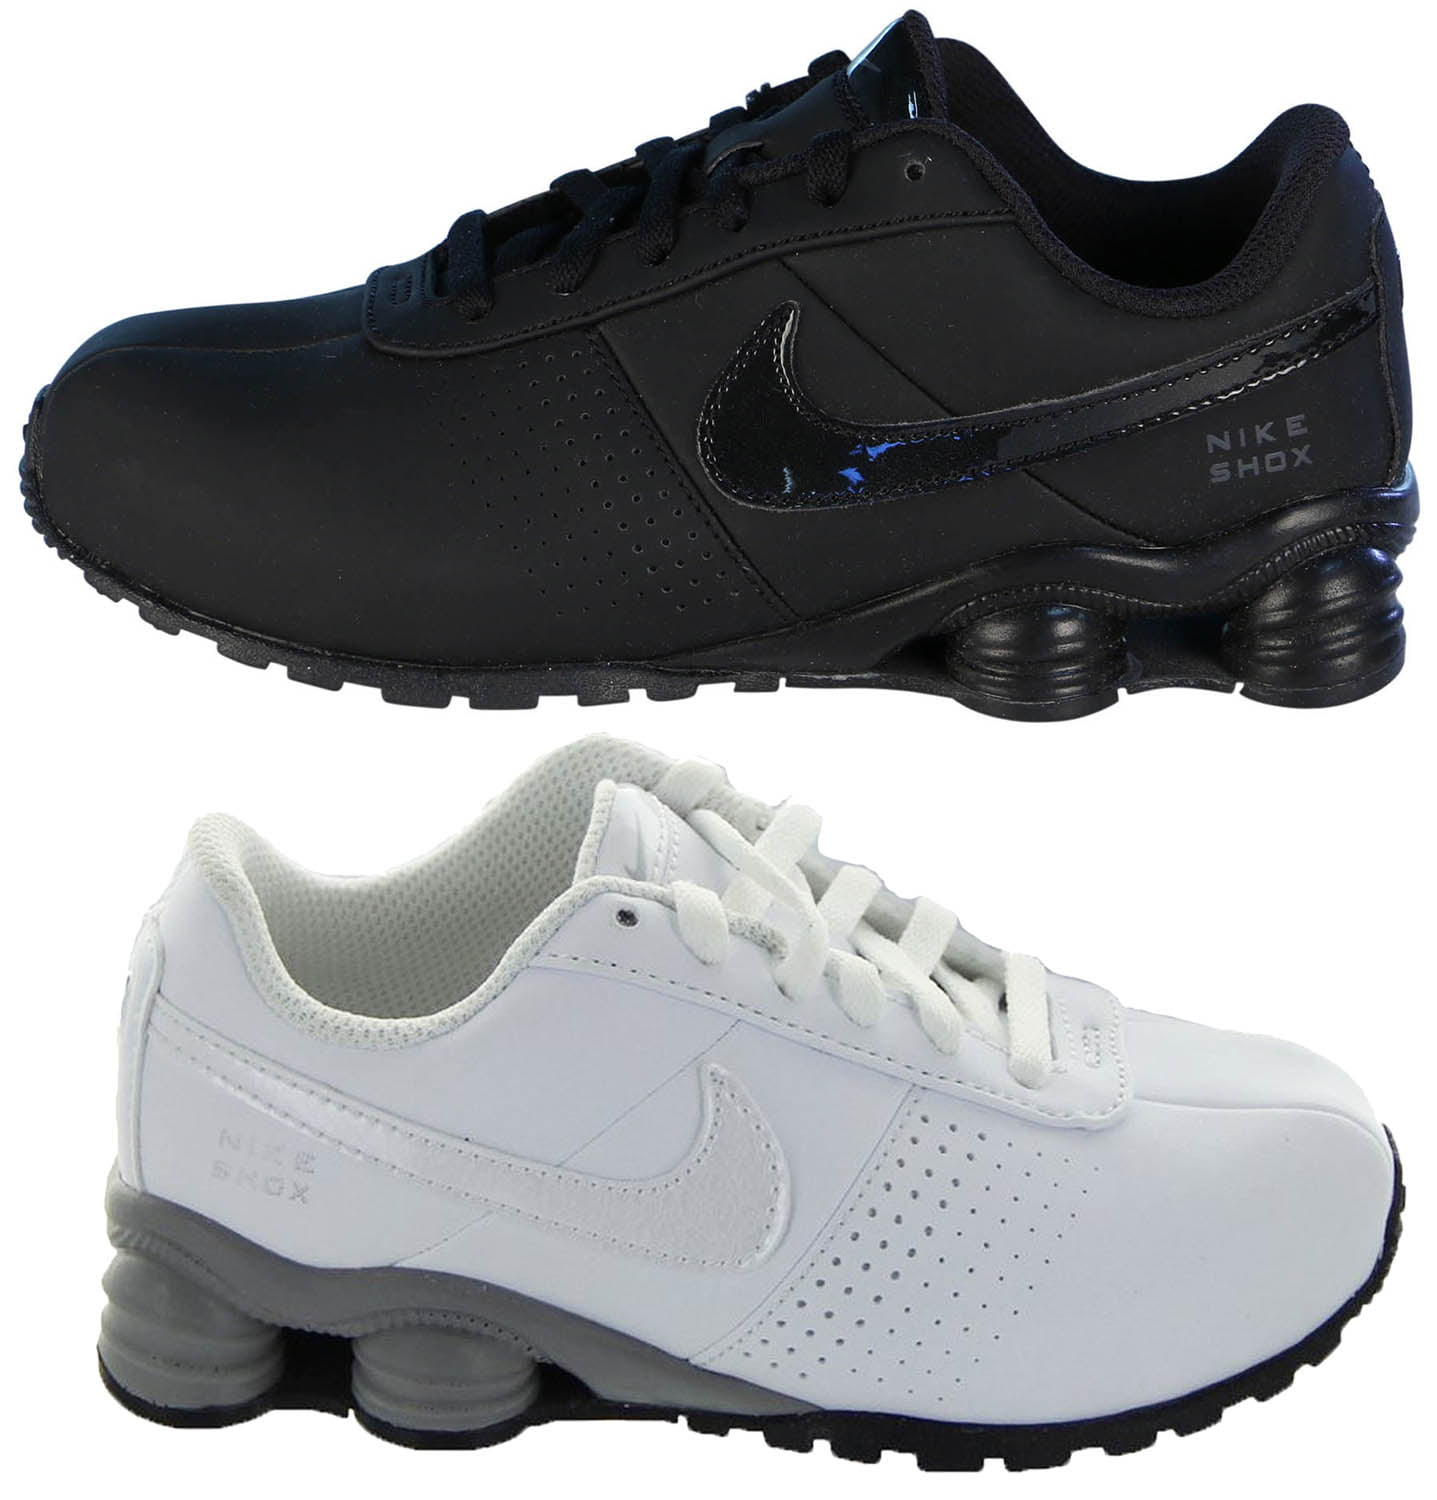 buy popular 7c250 baf34 ... low price nike boys shox deliver sms ps sneaker shoes walmart 577c2  1c368